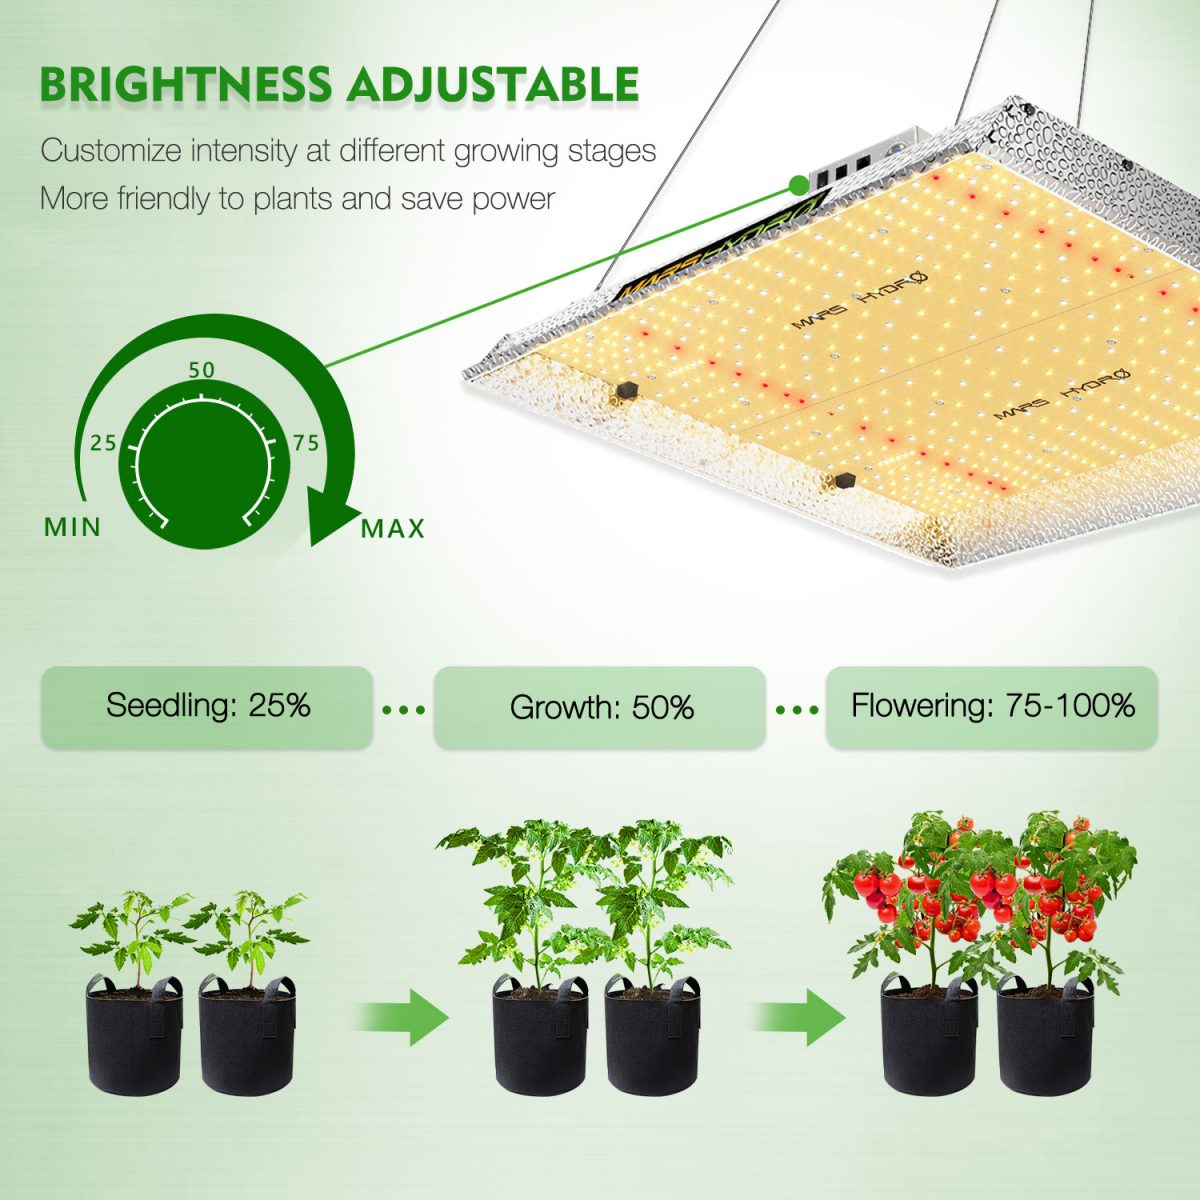 Dimmable TSW2000 led grow light